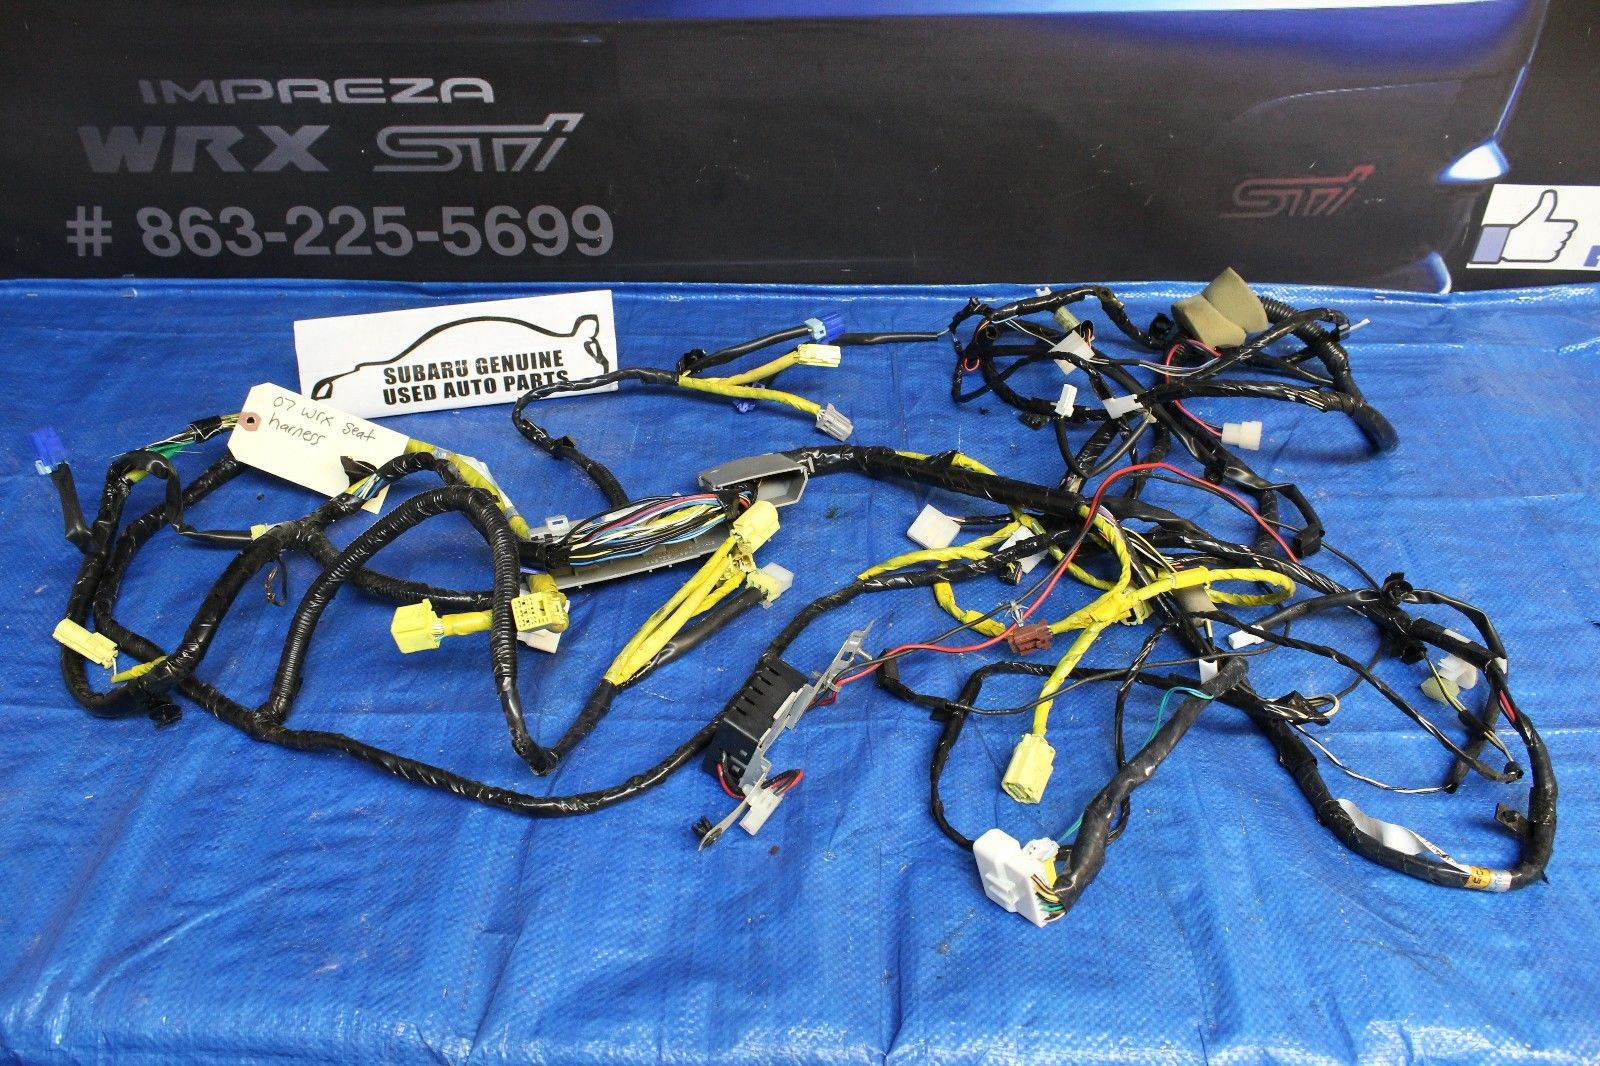 2007 Subaru Sti Wiring Harness Circuit Connection Diagram Legacy 2006 Impreza Wrx Interior Floor Seat Rh Subieautoparts Com 2015 Stereo